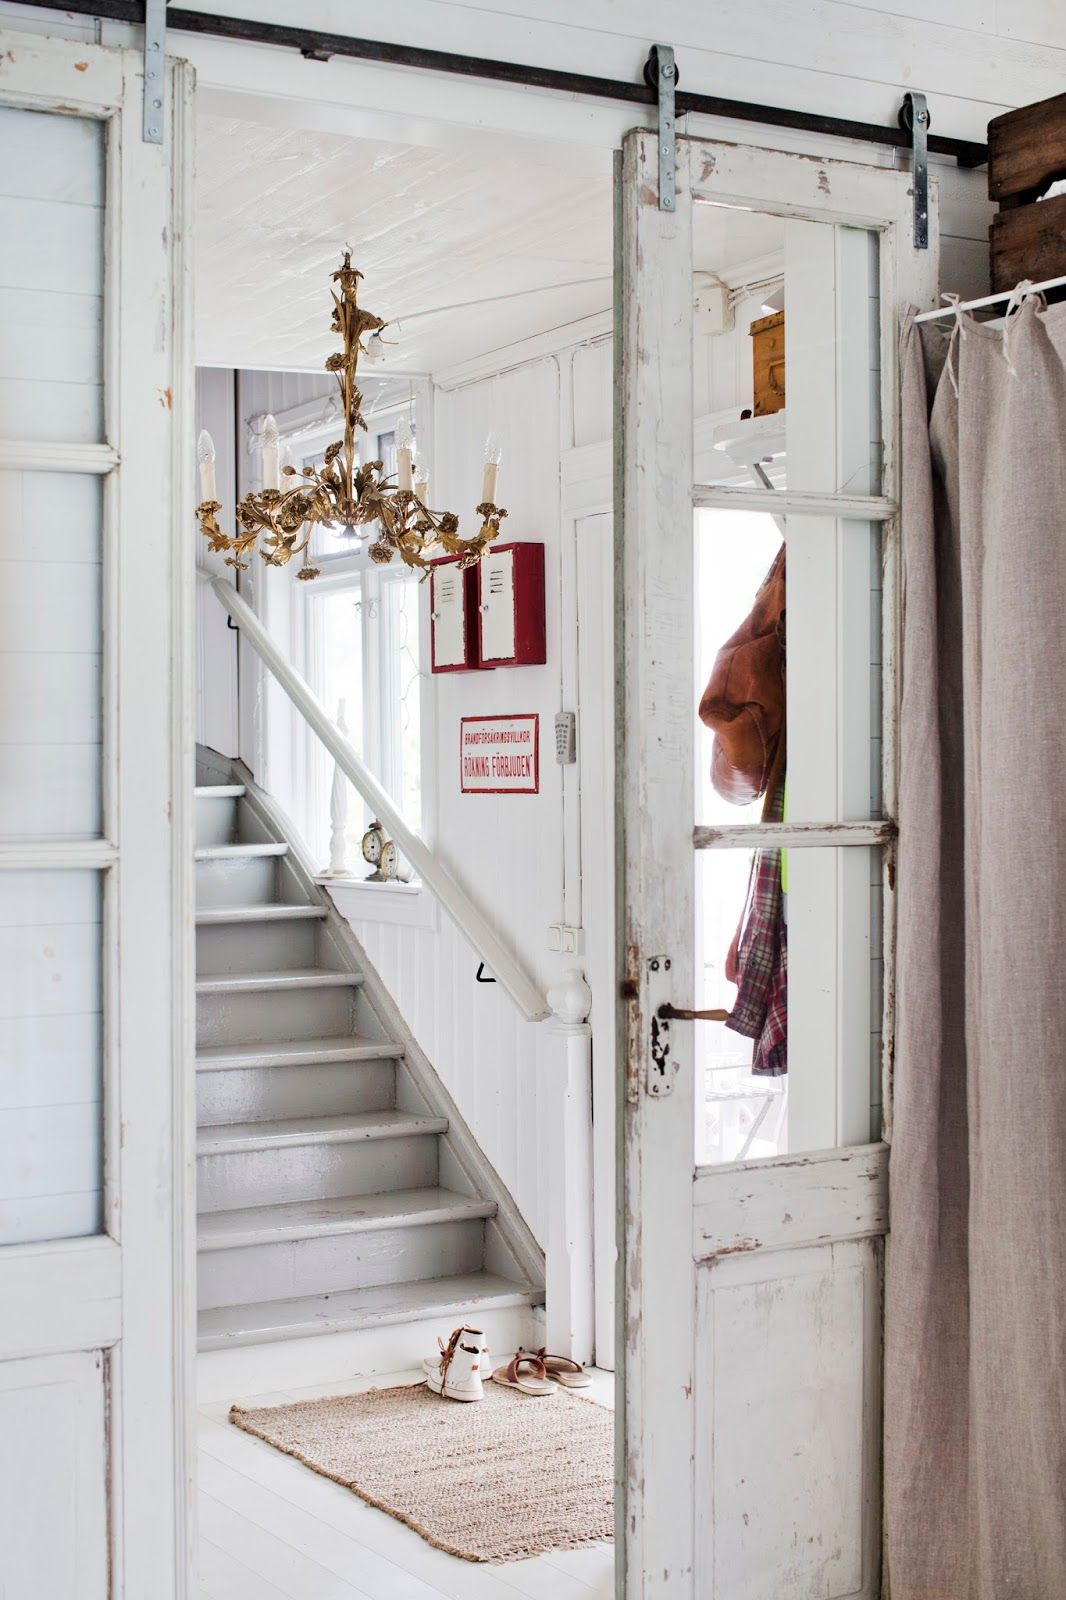 Vintage Windowed Doors On Sliding Tracks Give This Space An Airy